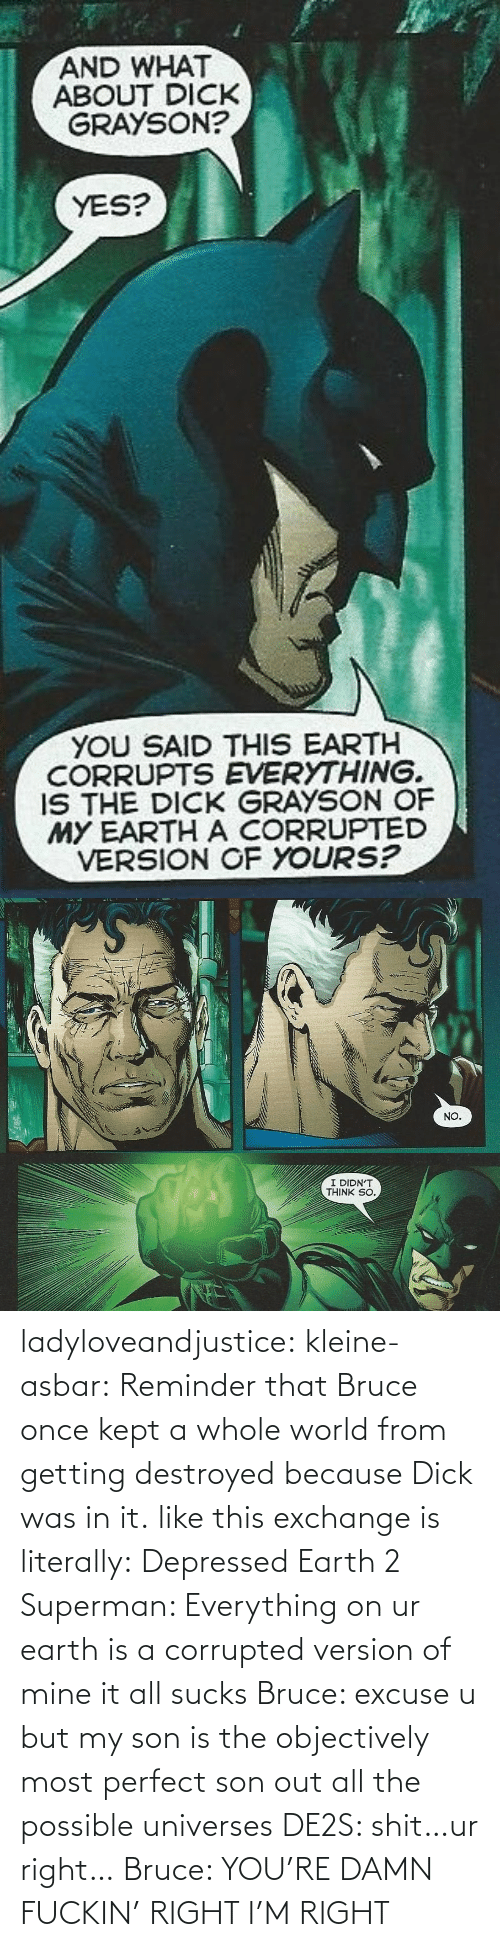 Superman, Target, and Tumblr: ladyloveandjustice:  kleine-asbar: Reminder that Bruce once kept a whole world from getting destroyed because Dick was in it. like this exchange is literally: Depressed Earth 2 Superman: Everything on ur earth is a corrupted version of mine it all sucks Bruce: excuse u but my son is the objectively most perfect son out all the possible universes DE2S: shit…ur right… Bruce: YOU'RE DAMN FUCKIN' RIGHT I'M RIGHT